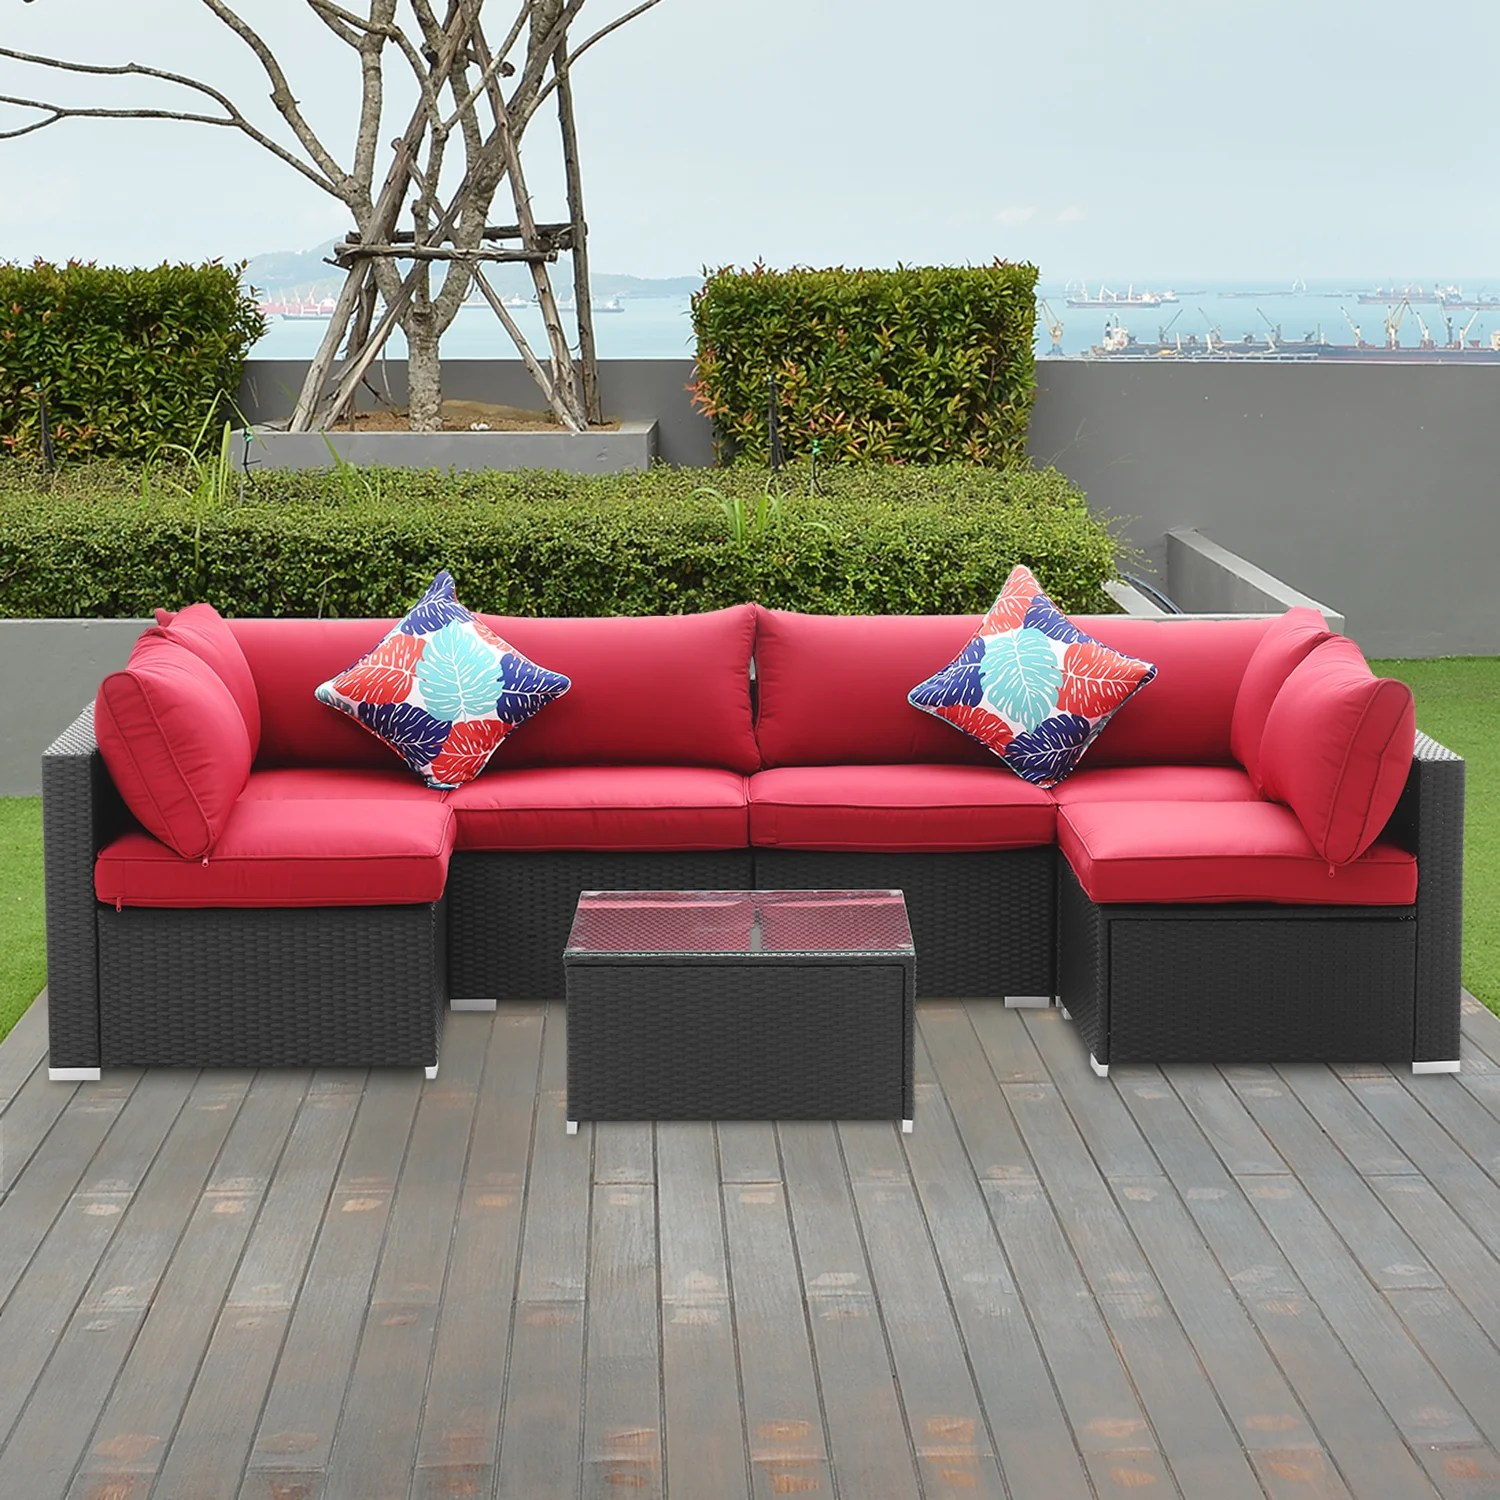 breccan patio furniture on clearance 7 piece rattan sectional seating group with cushions